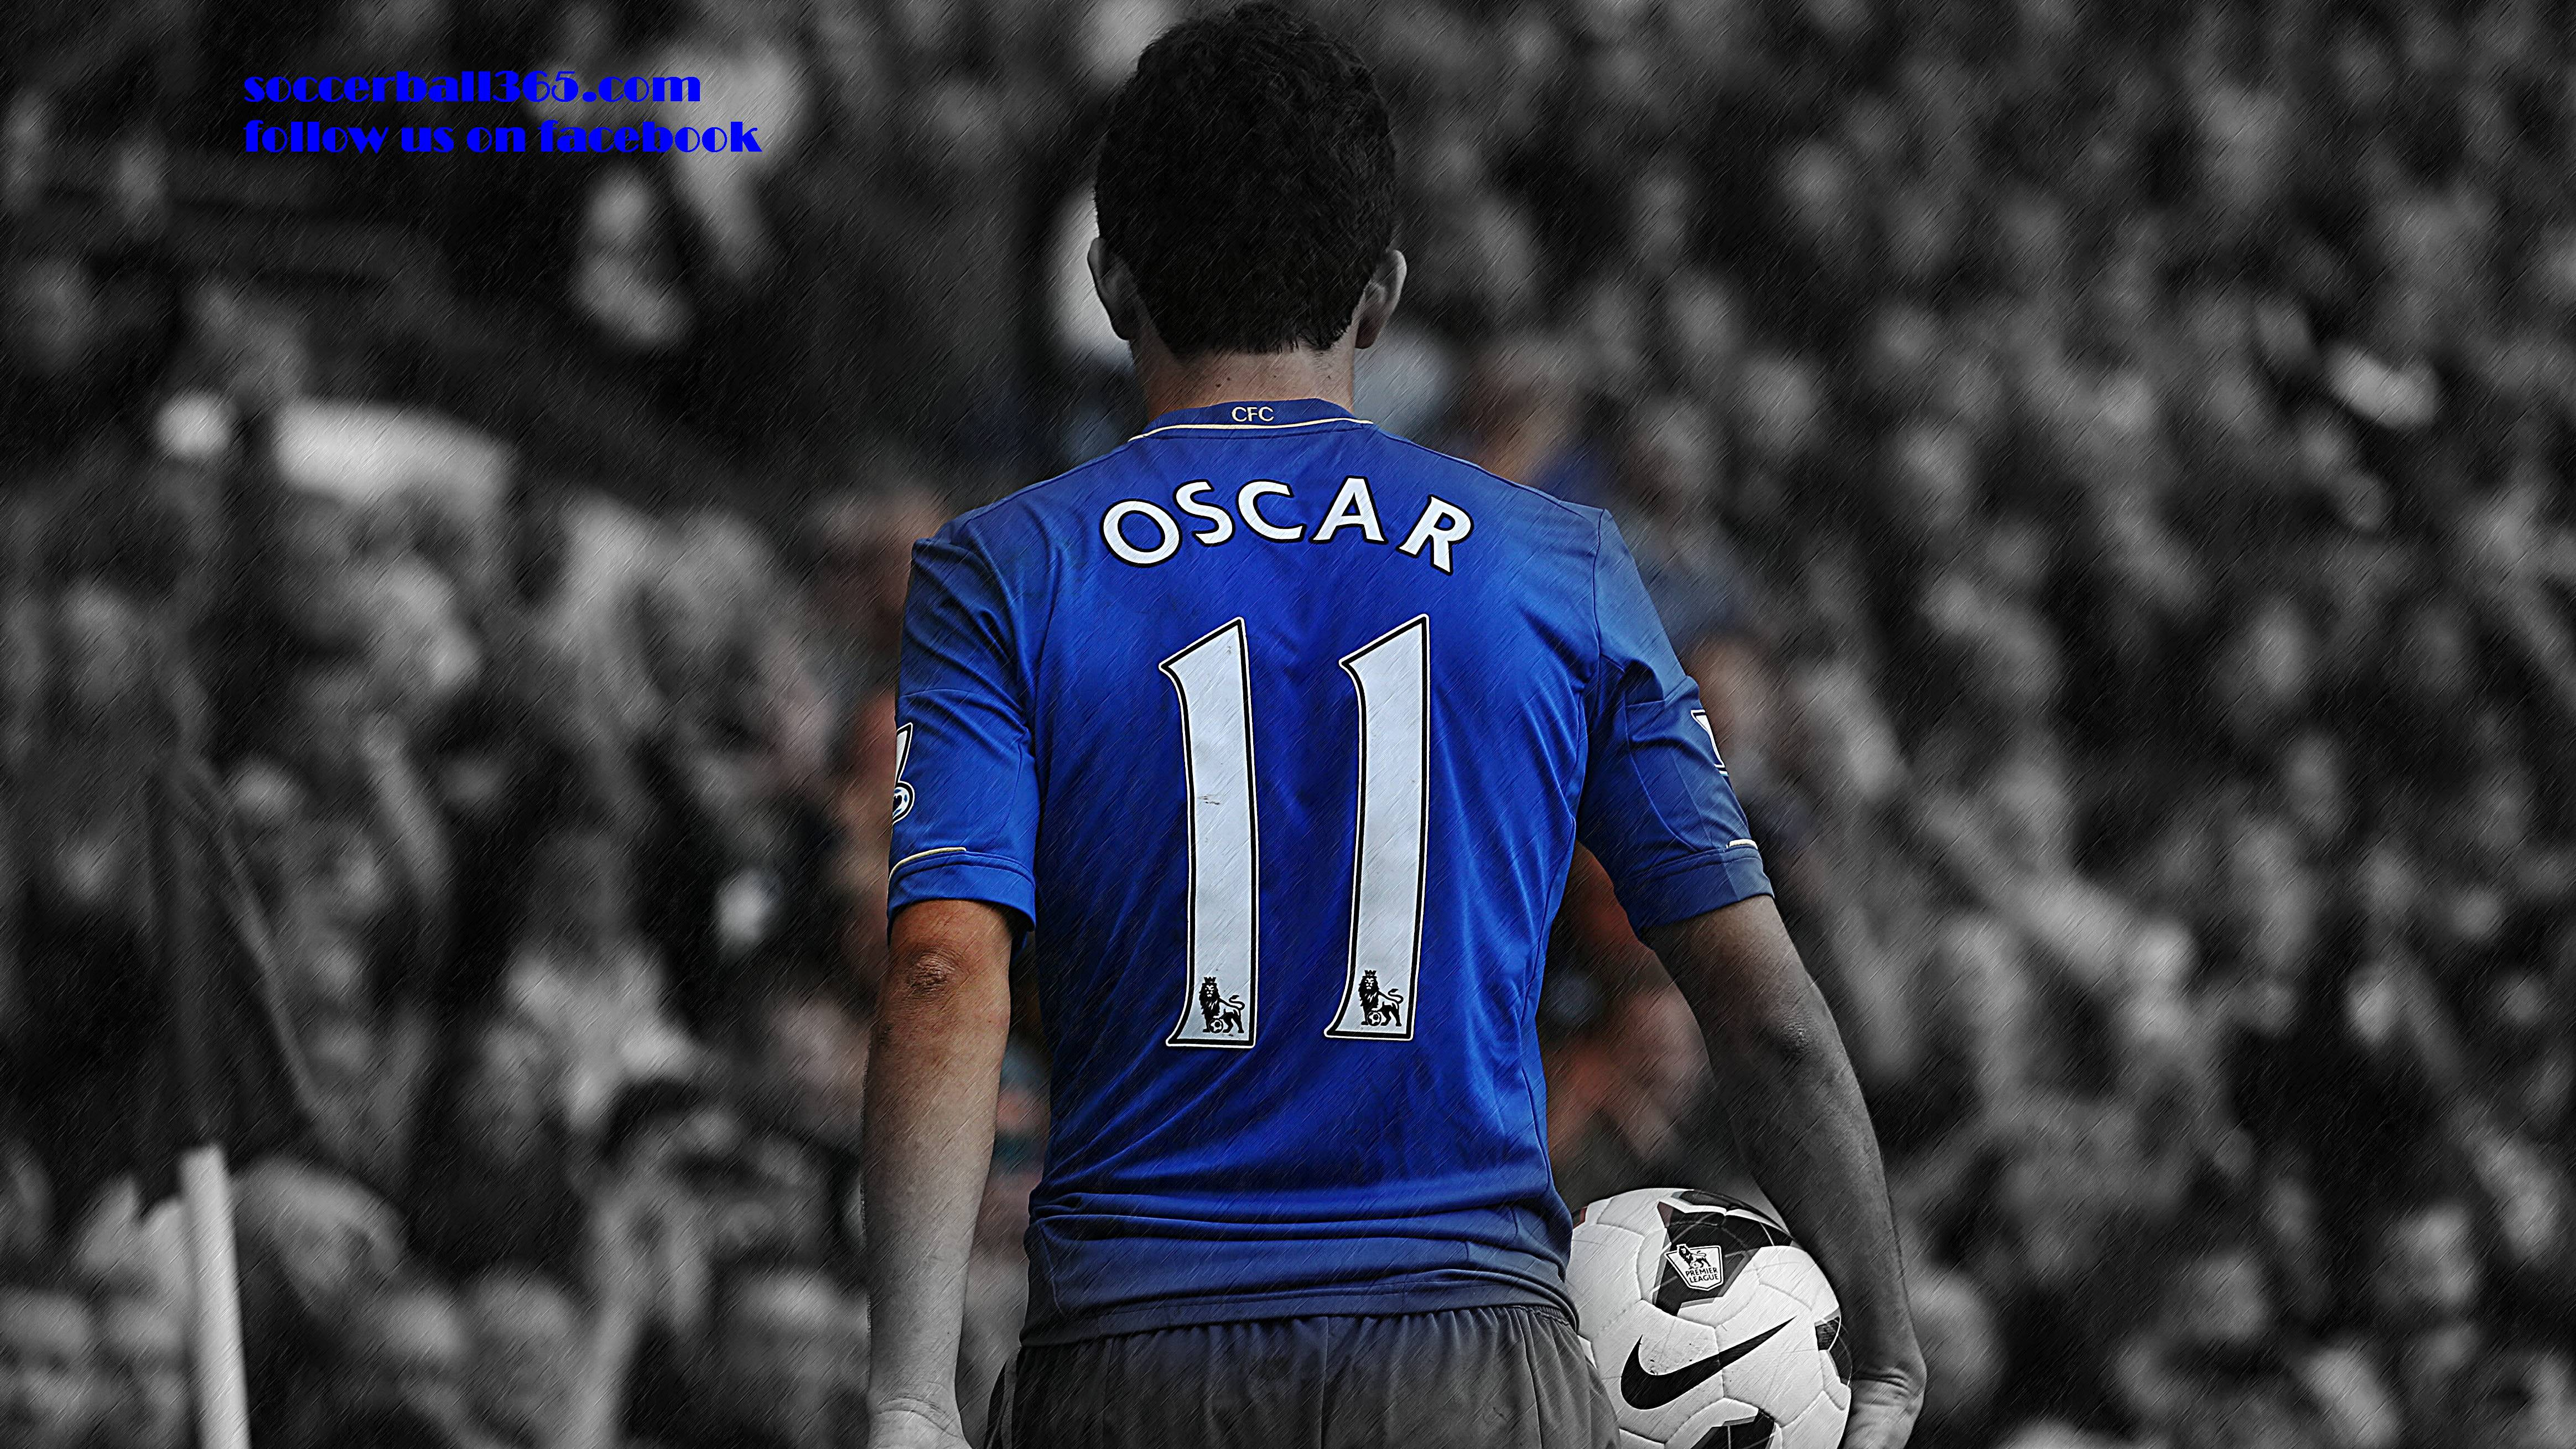 Oscar Wallpapers